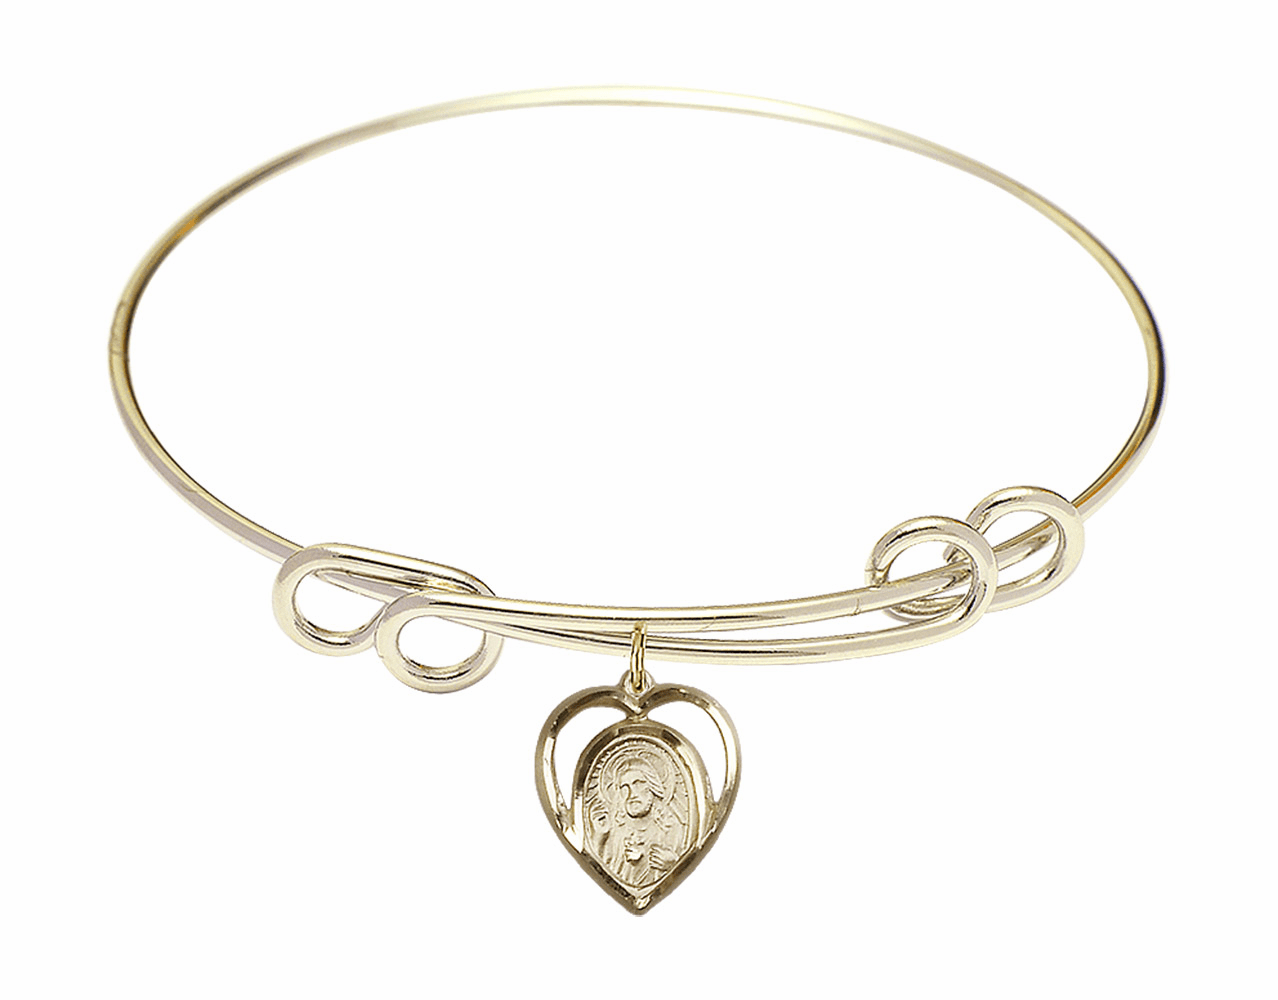 Round Double Loop Bangle Bracelet w/Scapular Heart Medal Charm by Bliss Mfg